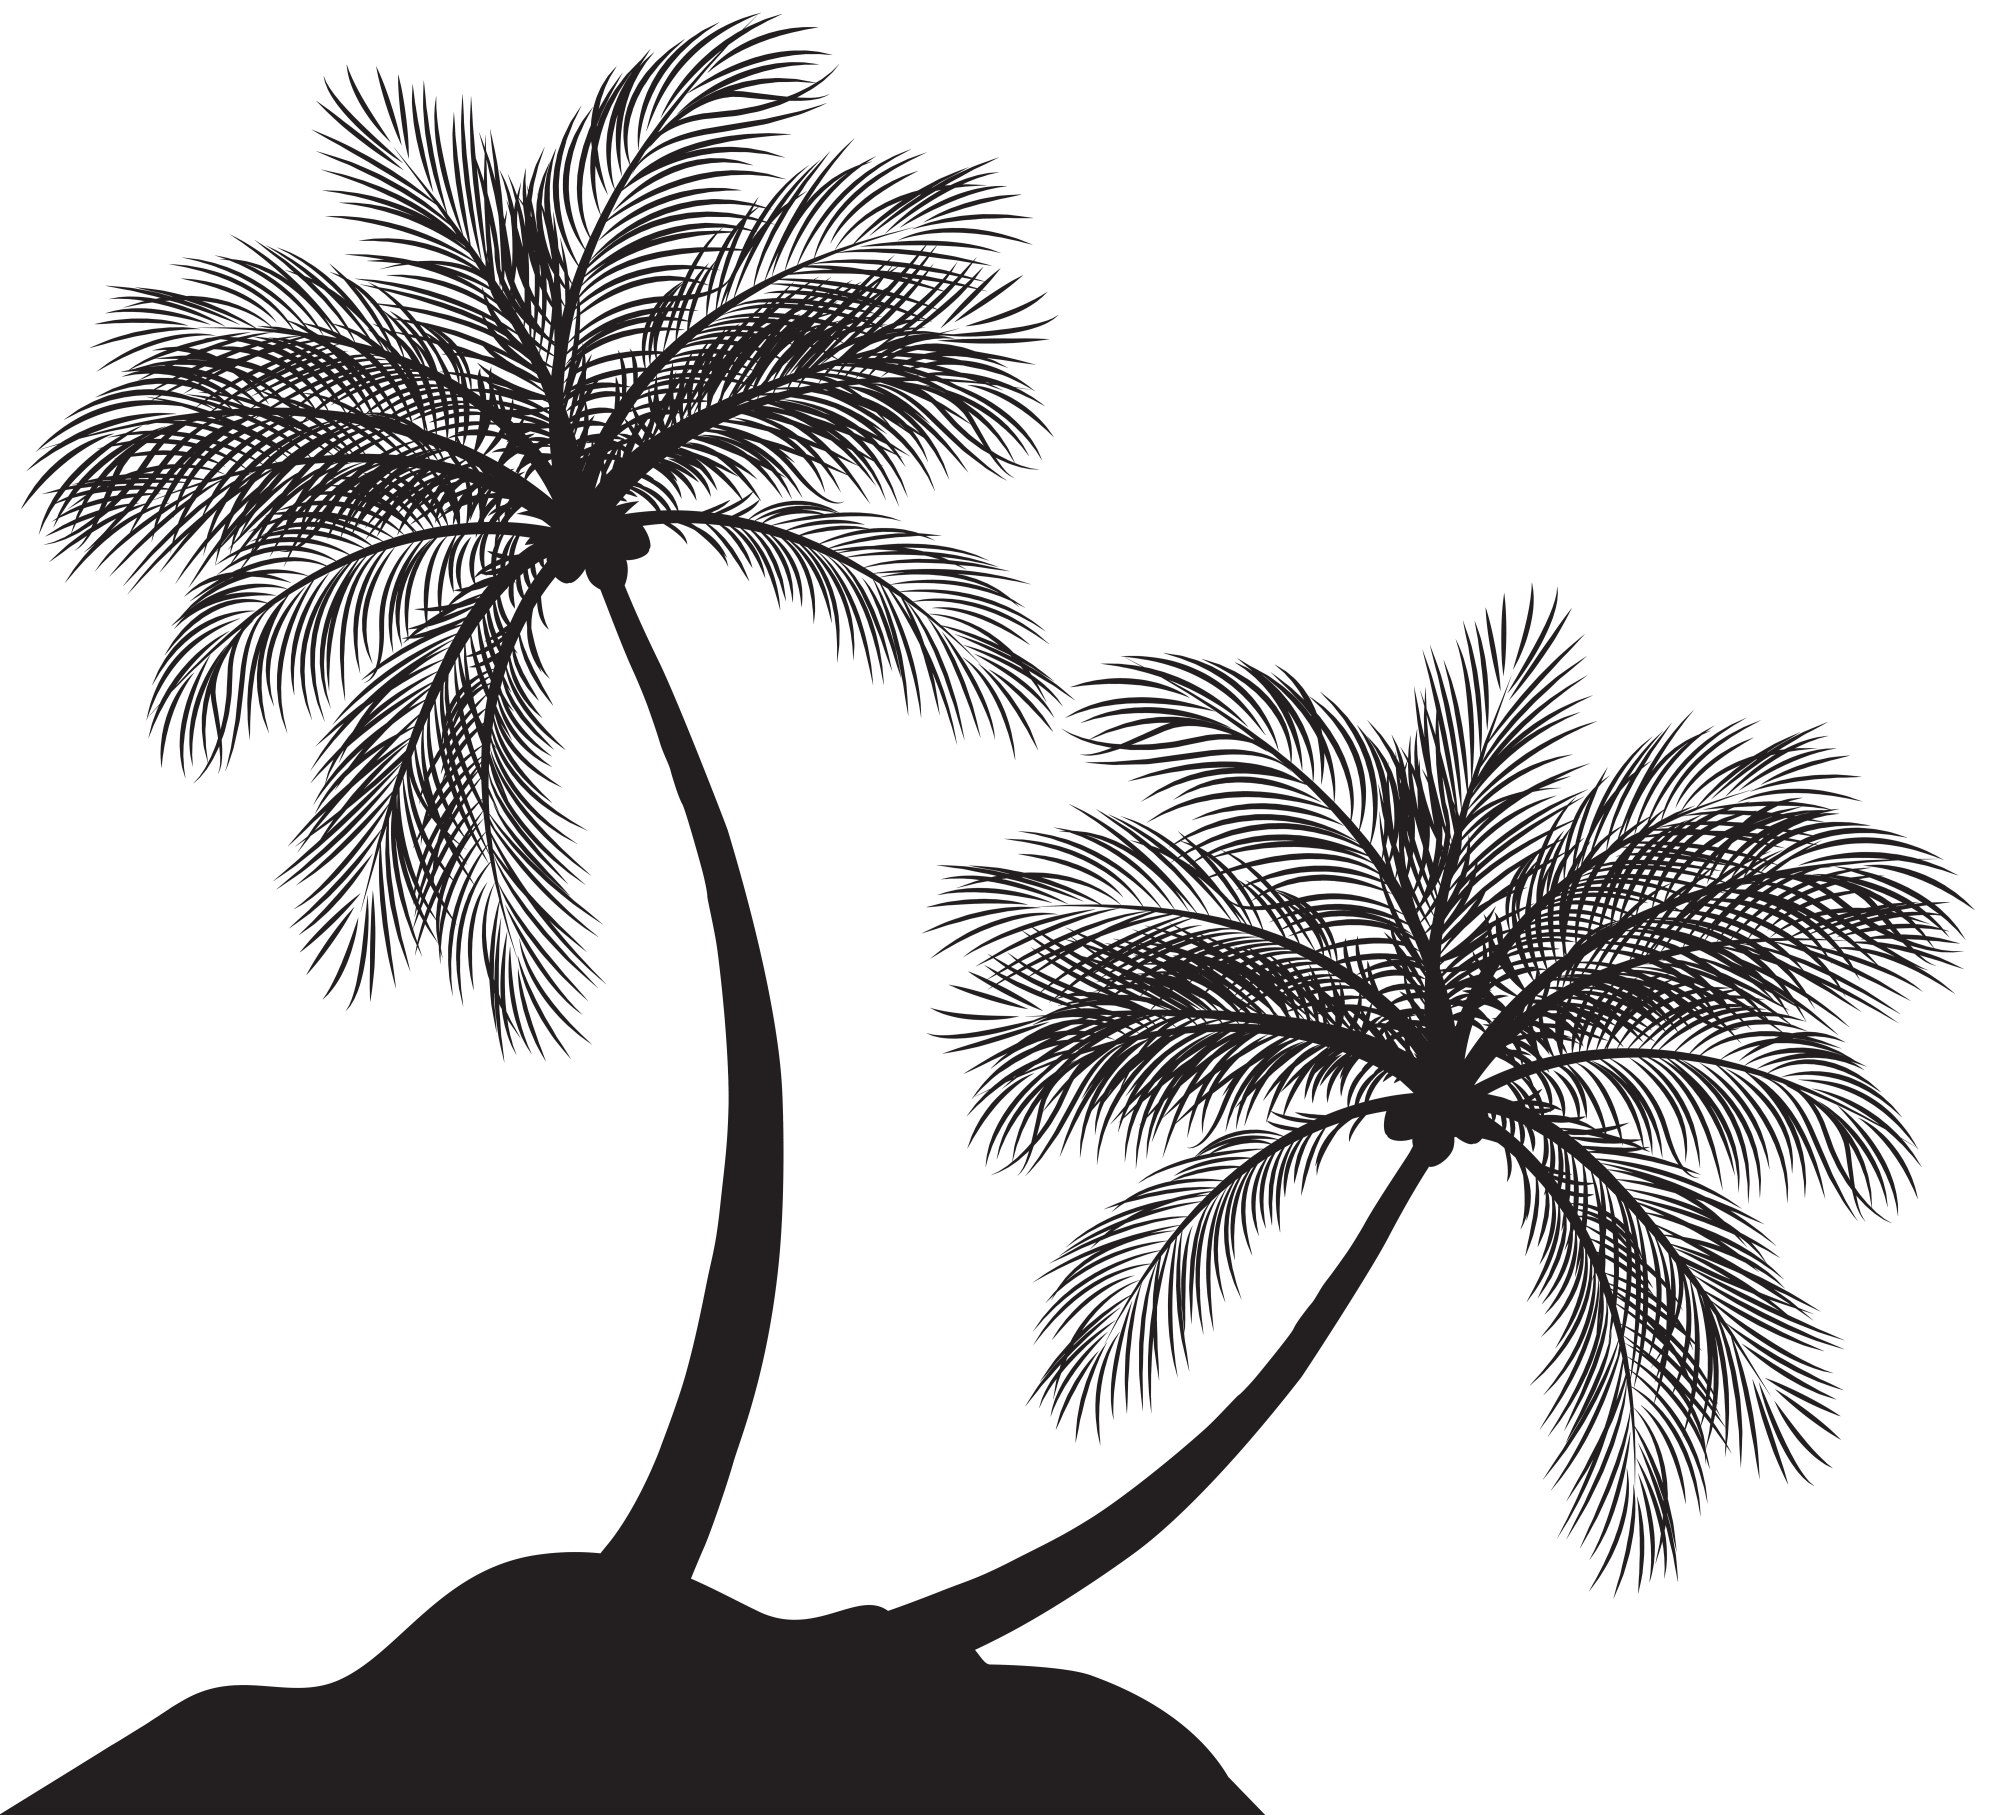 hight resolution of png tree silohuette 100 free clipart palm tree silhouette free images at clker com